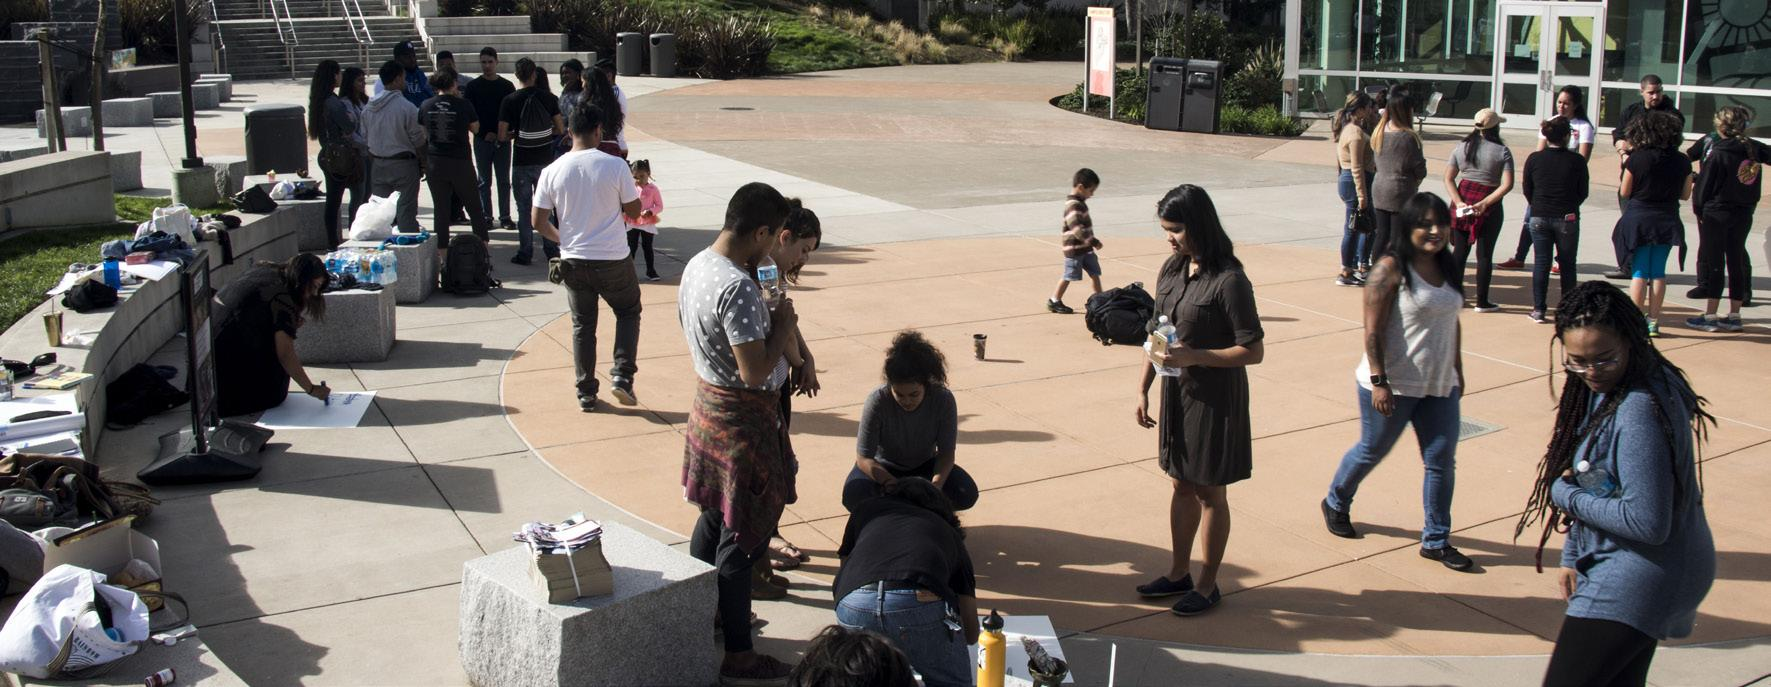 Several students gather in Skyline's Quad in demonstration on Nov. 11, 2016.